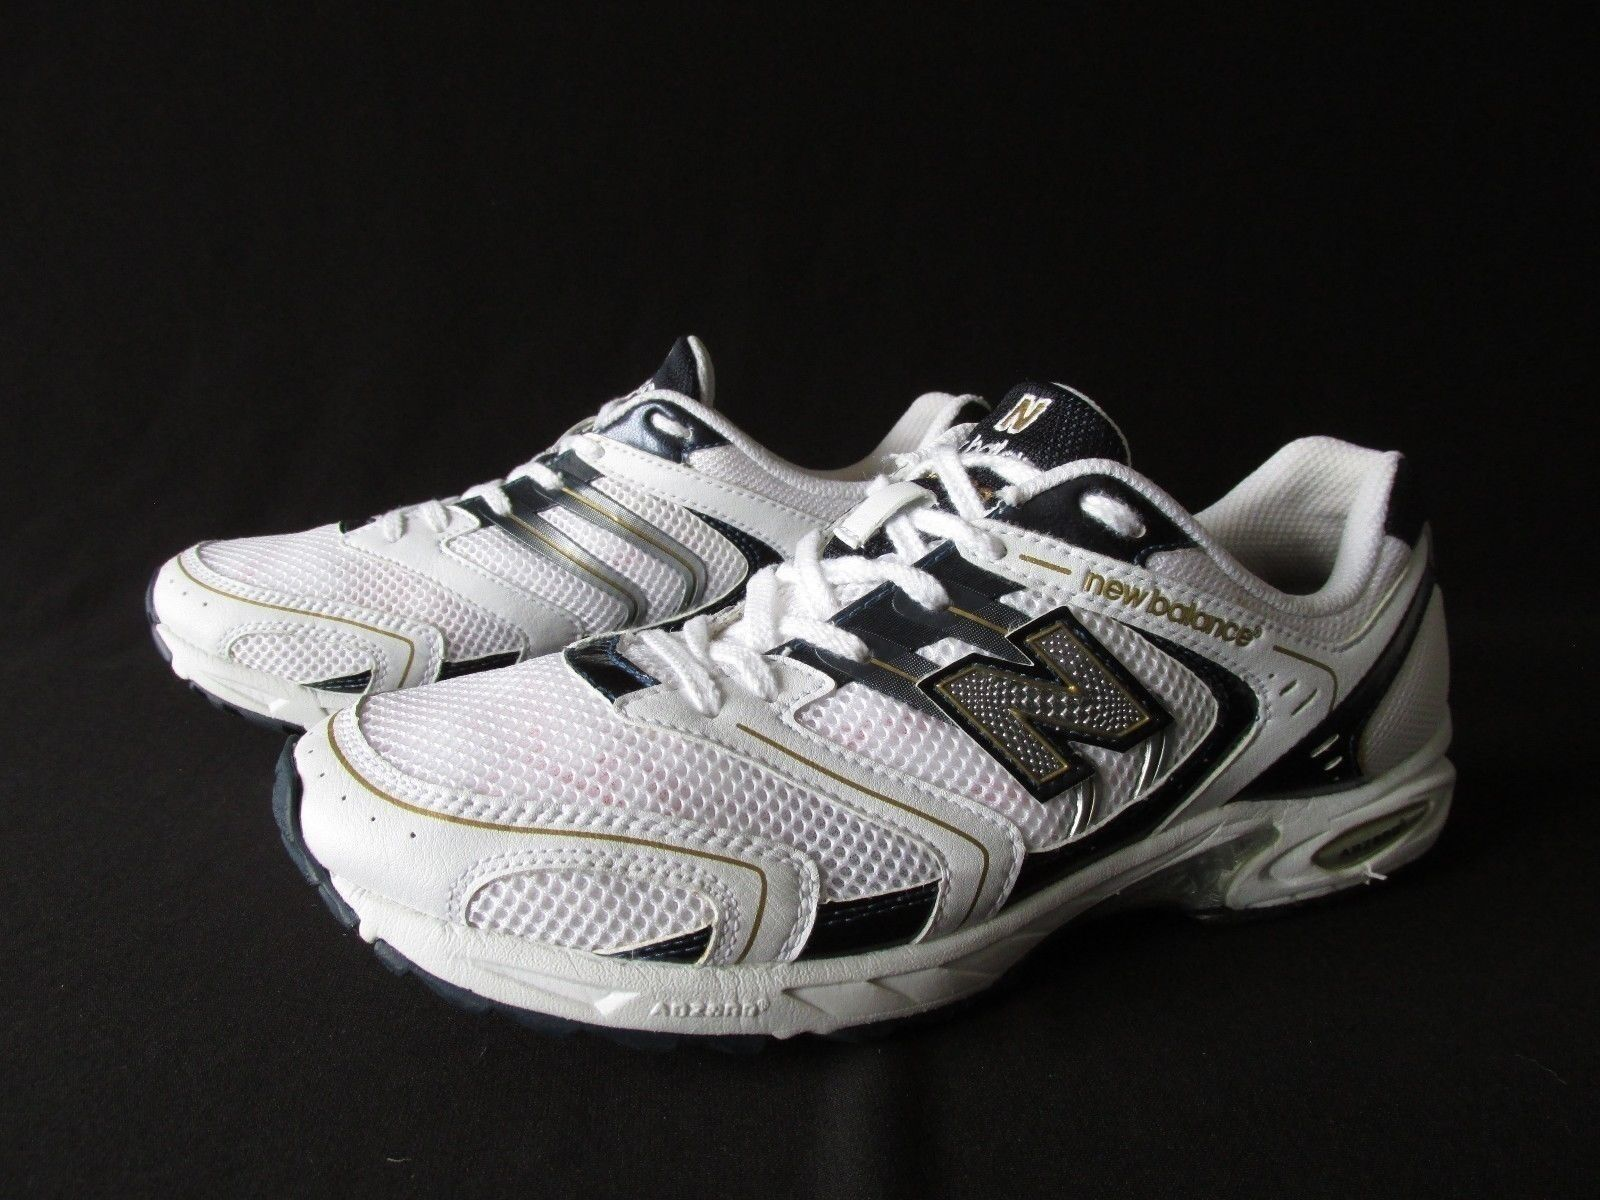 New Balance RC 600 White Navy Synthetic Mesh Running Shoes  Men's 7.5M NEW